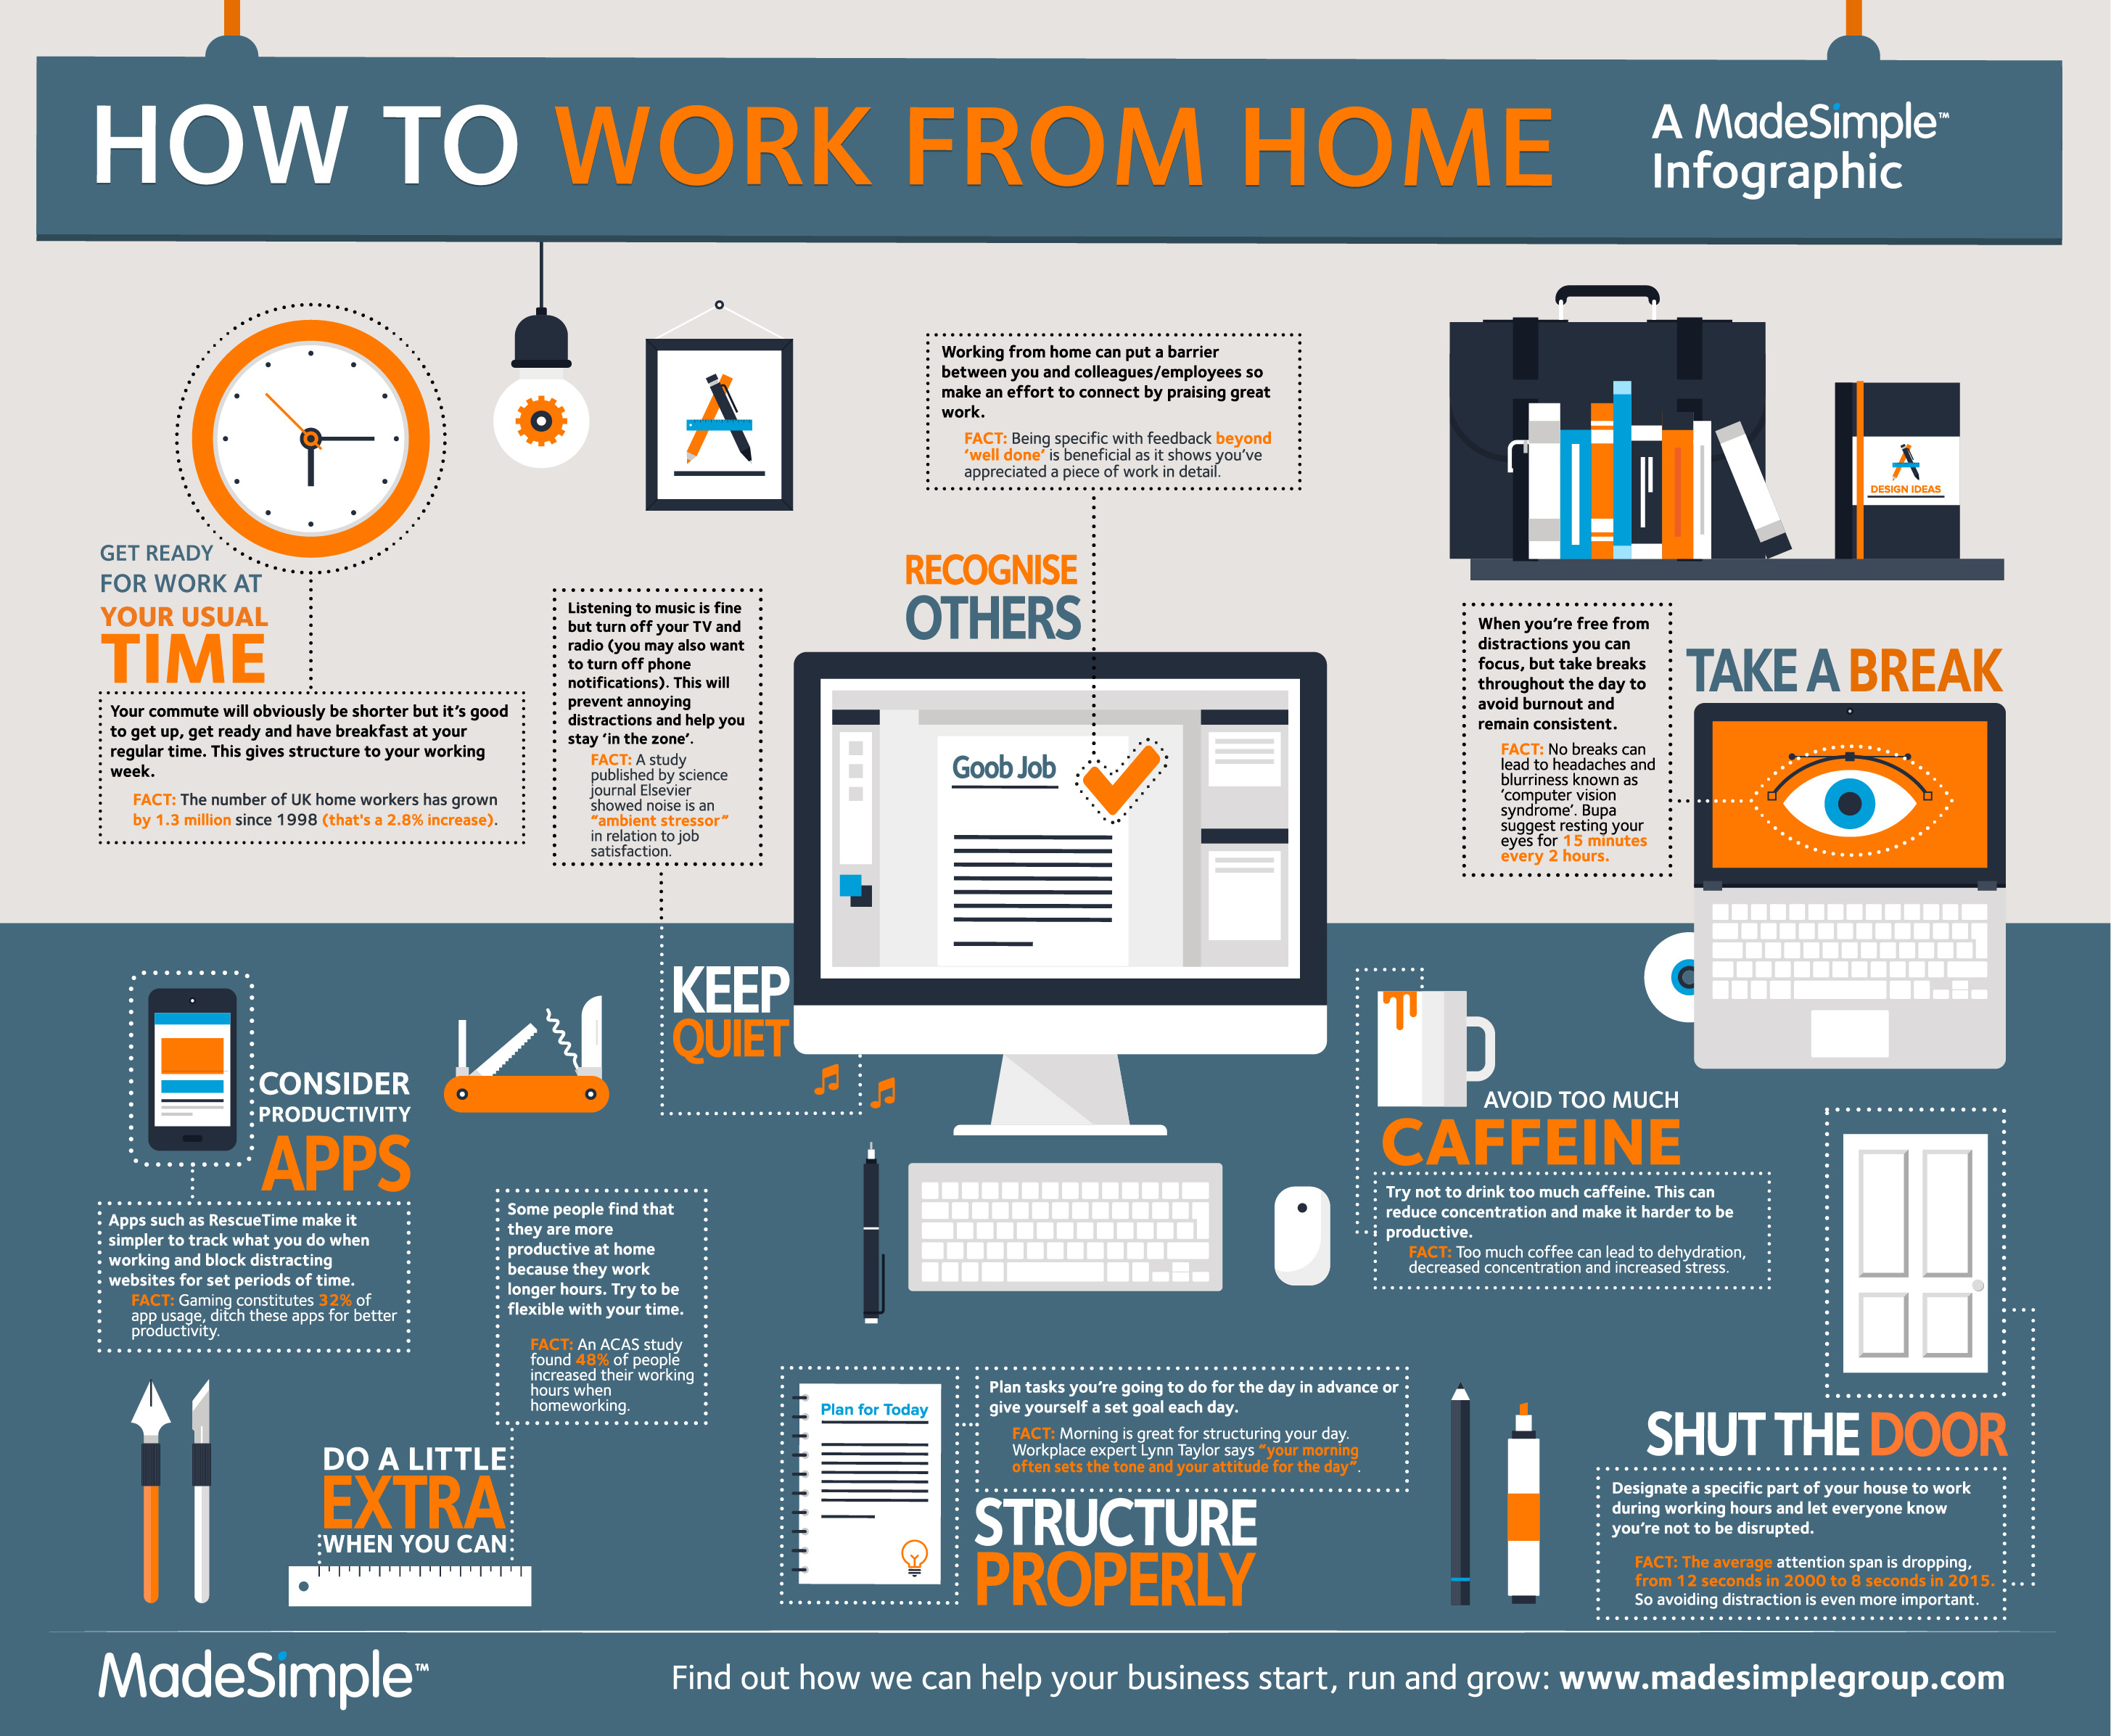 wfh a working from home infographic madesimple blog. Black Bedroom Furniture Sets. Home Design Ideas